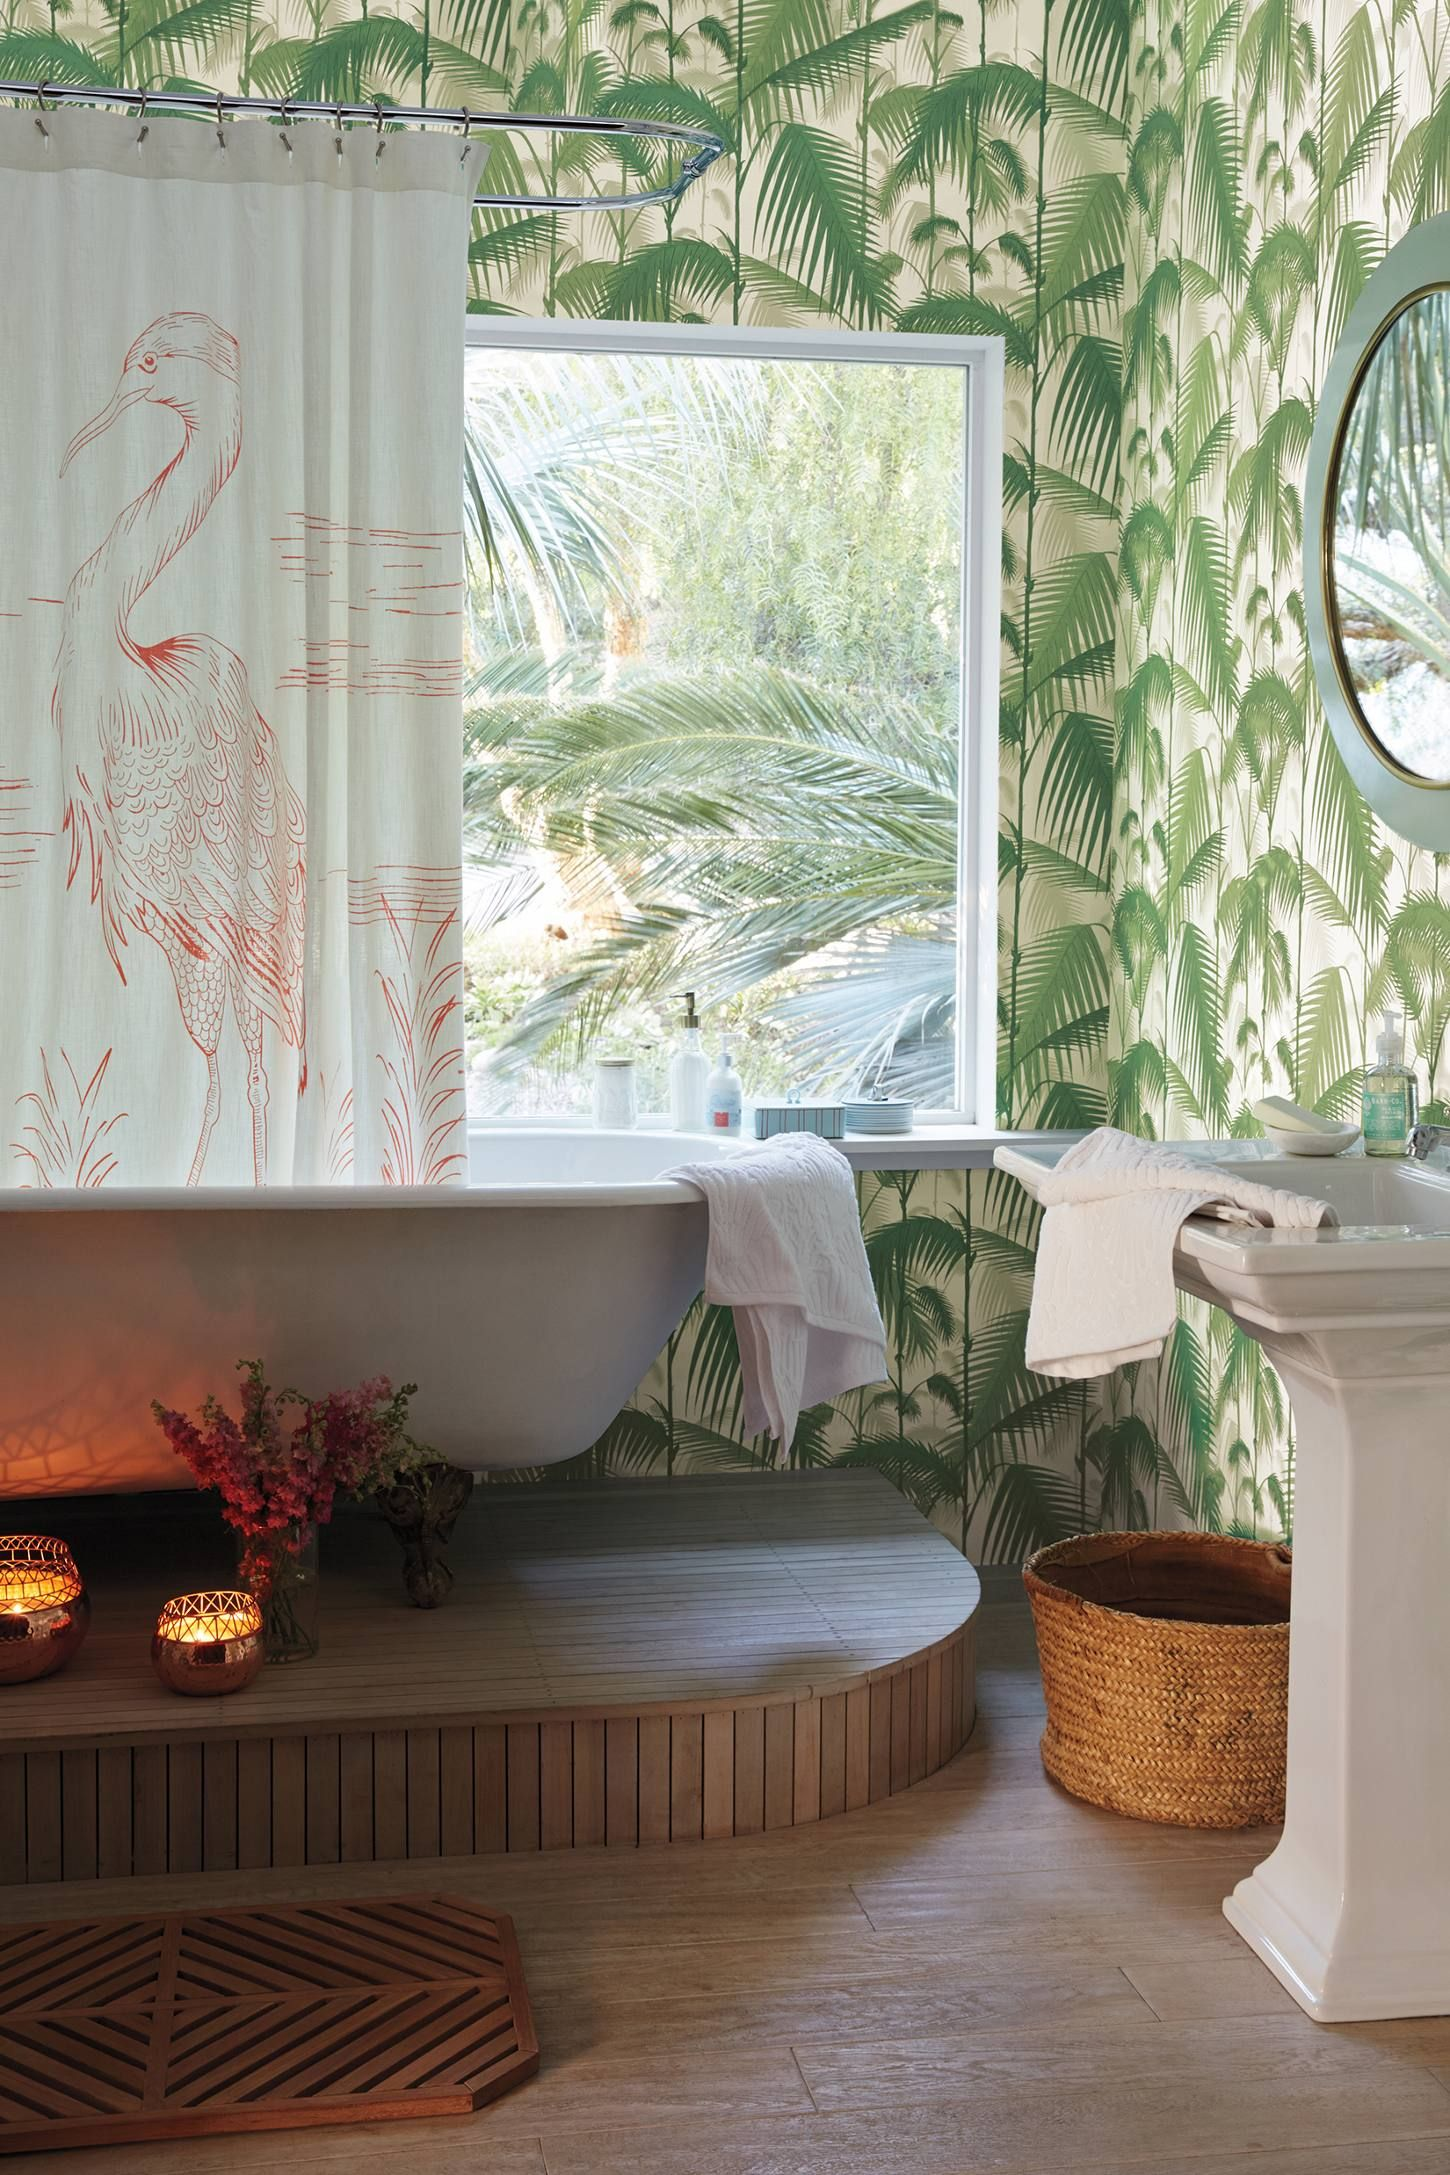 Heron Shower Curtain Home wallpaper, Home, Tropical bathroom